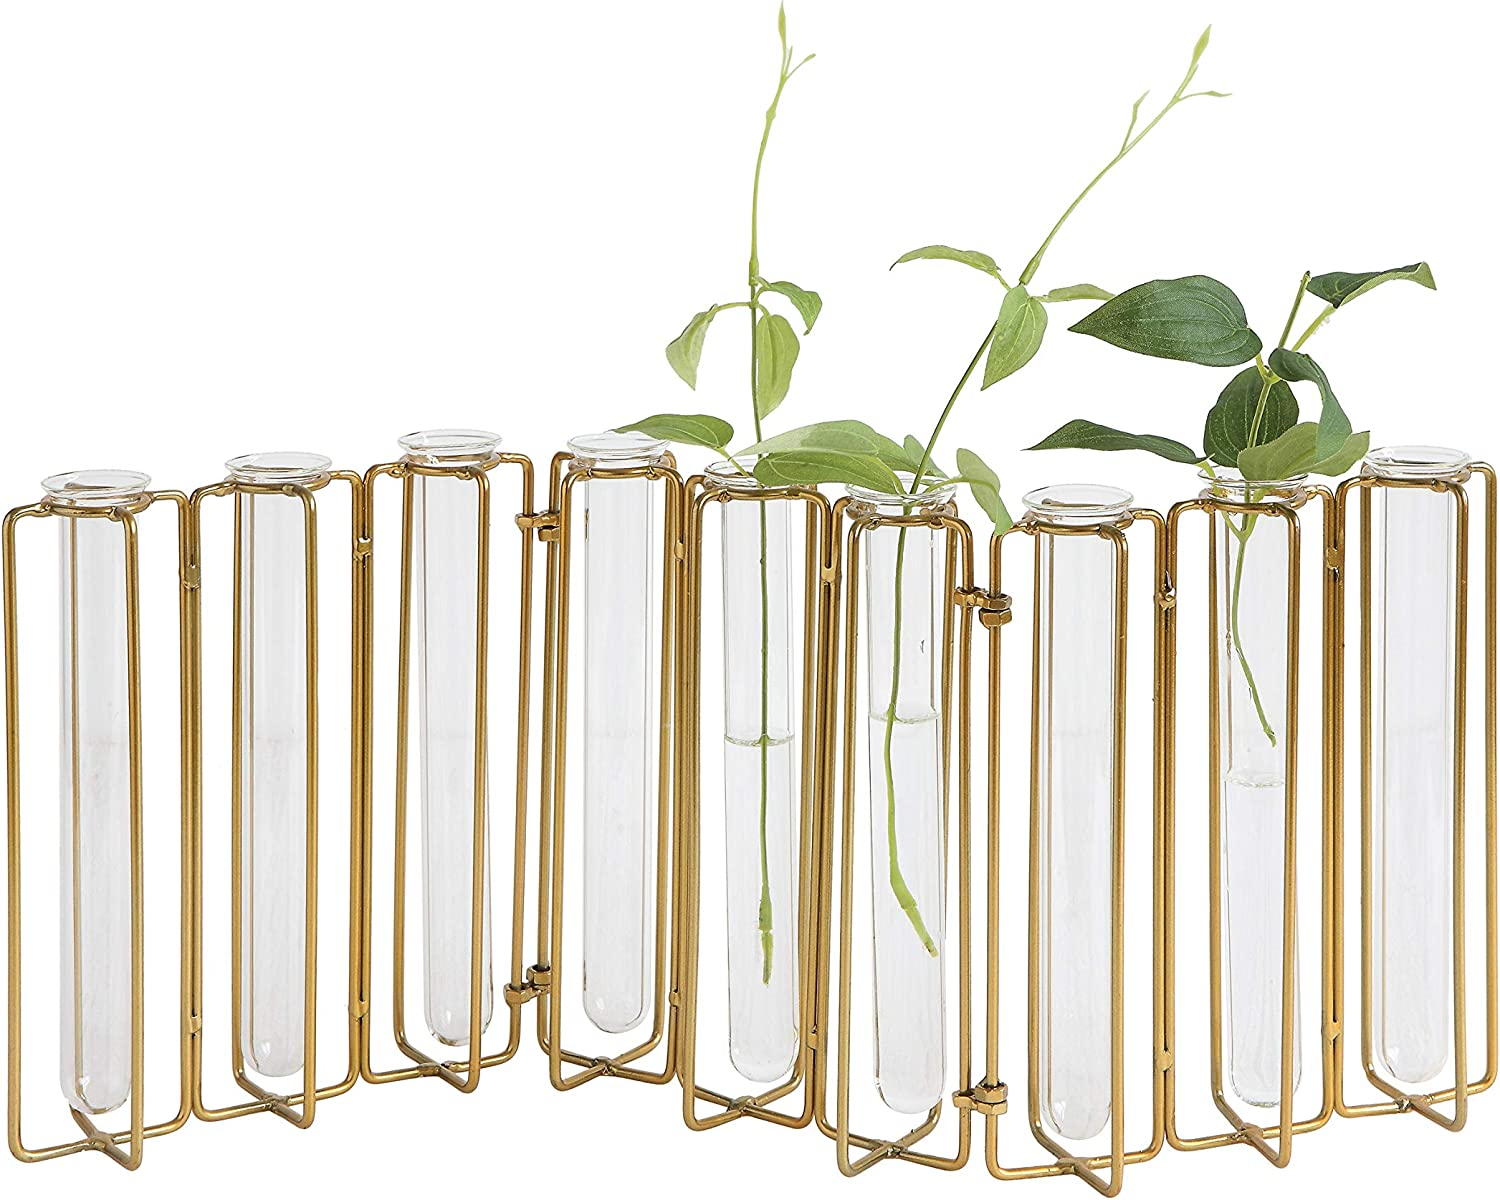 Creative Co-op DA8478-1 9 Test Tube Vases in a Single Gold Metal Stand